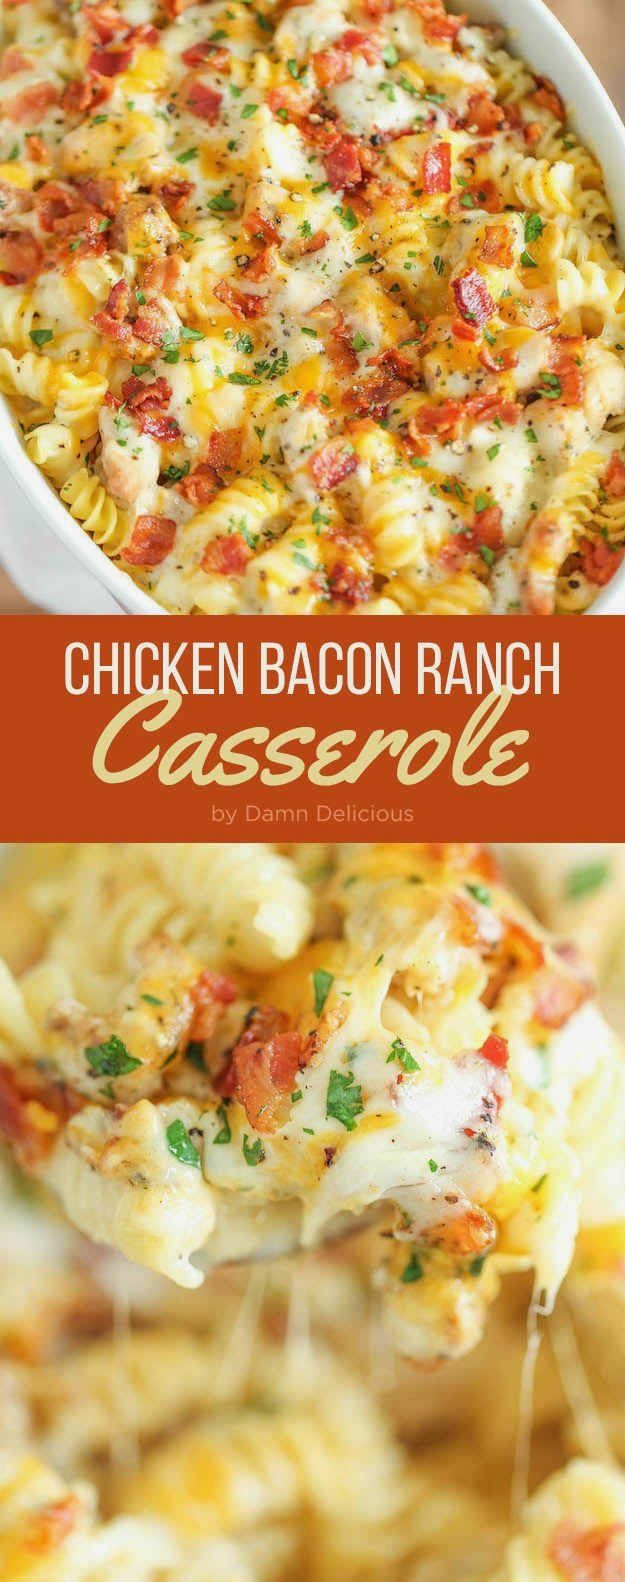 21 easy chicken dinners that are tasty af easy chicken recipes 21 easy chicken dinners that are tasty af forumfinder Choice Image